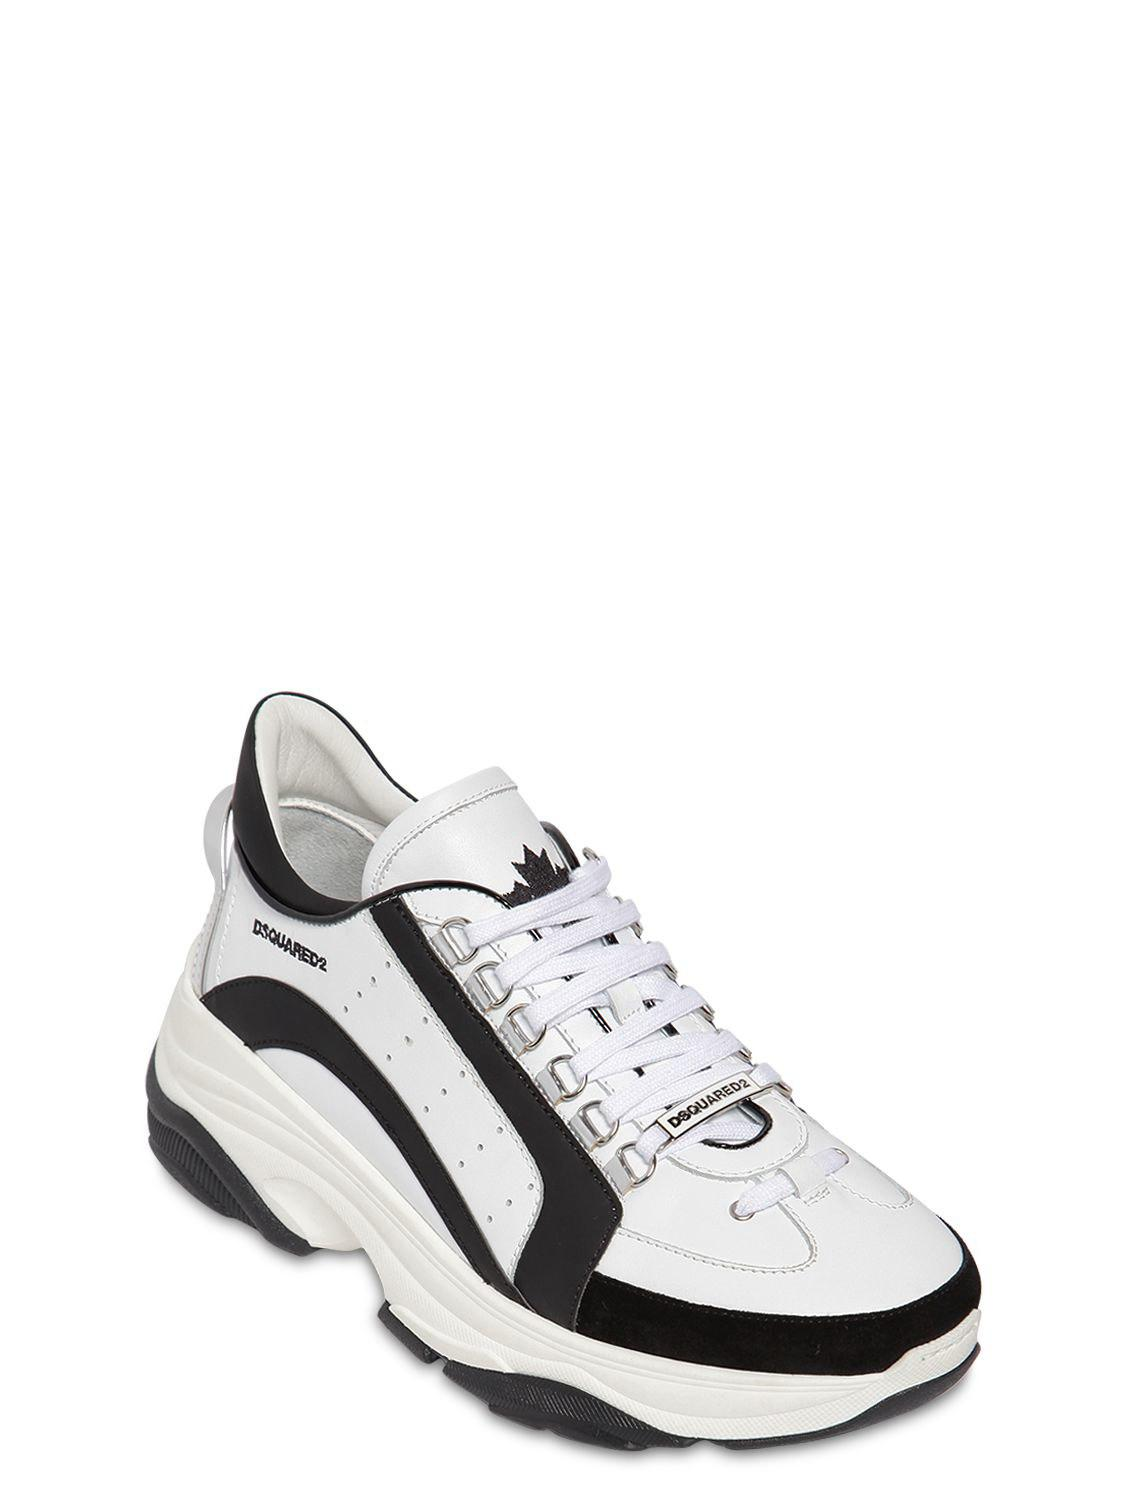 7e2f53cb0d5 Dsquared² 551 Bumpy Leather & Suede Sneakers in White for Men - Lyst